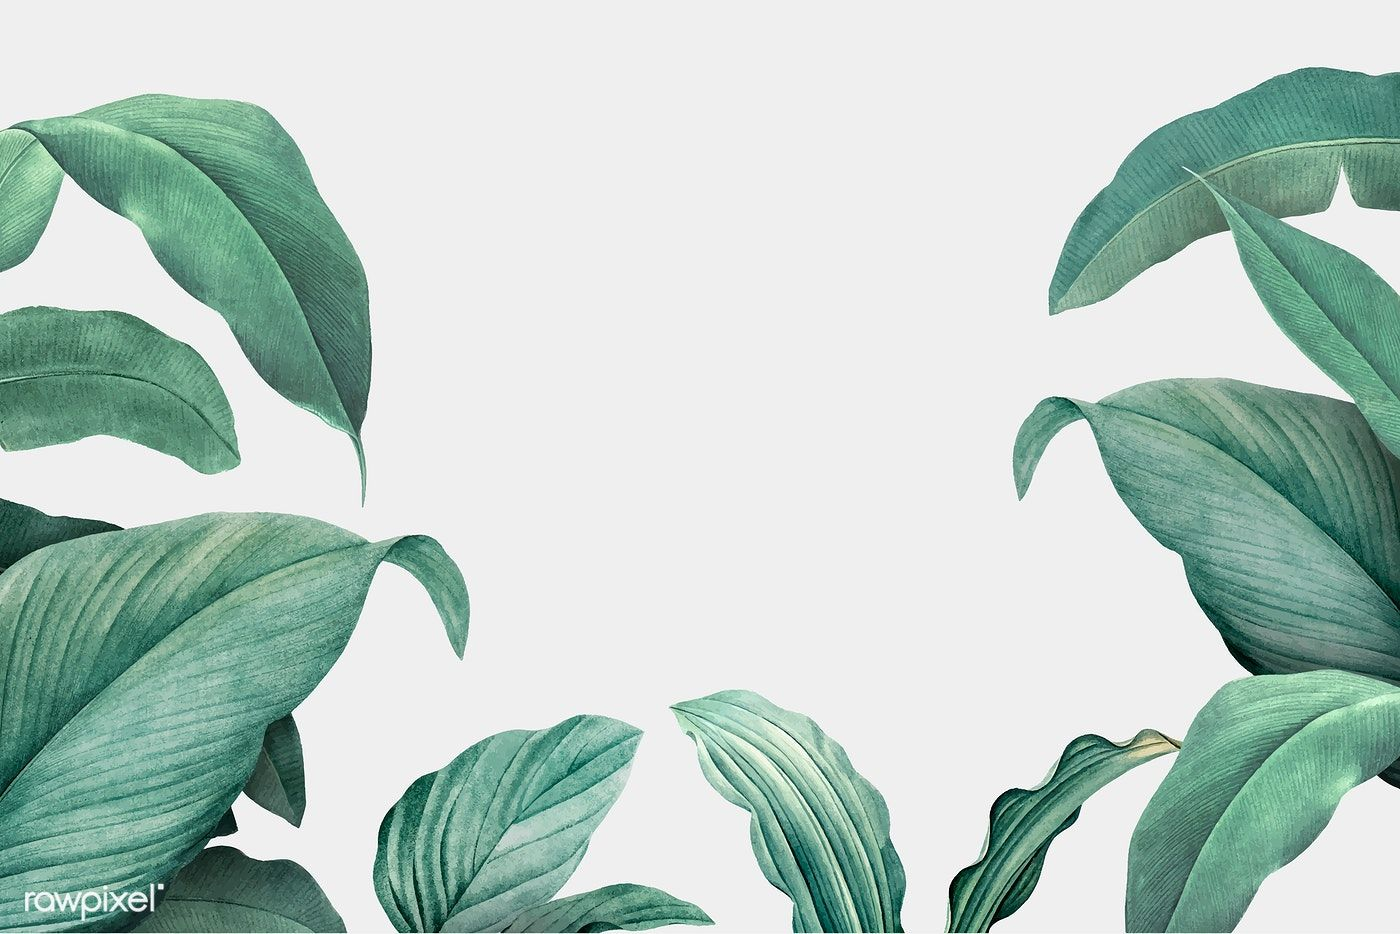 Download Premium Vector Of Hand Drawn Tropical Leaves On A White Desktop Wallpaper Art Aesthetic Desktop Wallpaper Computer Wallpaper Desktop Wallpapers Download all photos and use them even for commercial projects. download premium vector of hand drawn